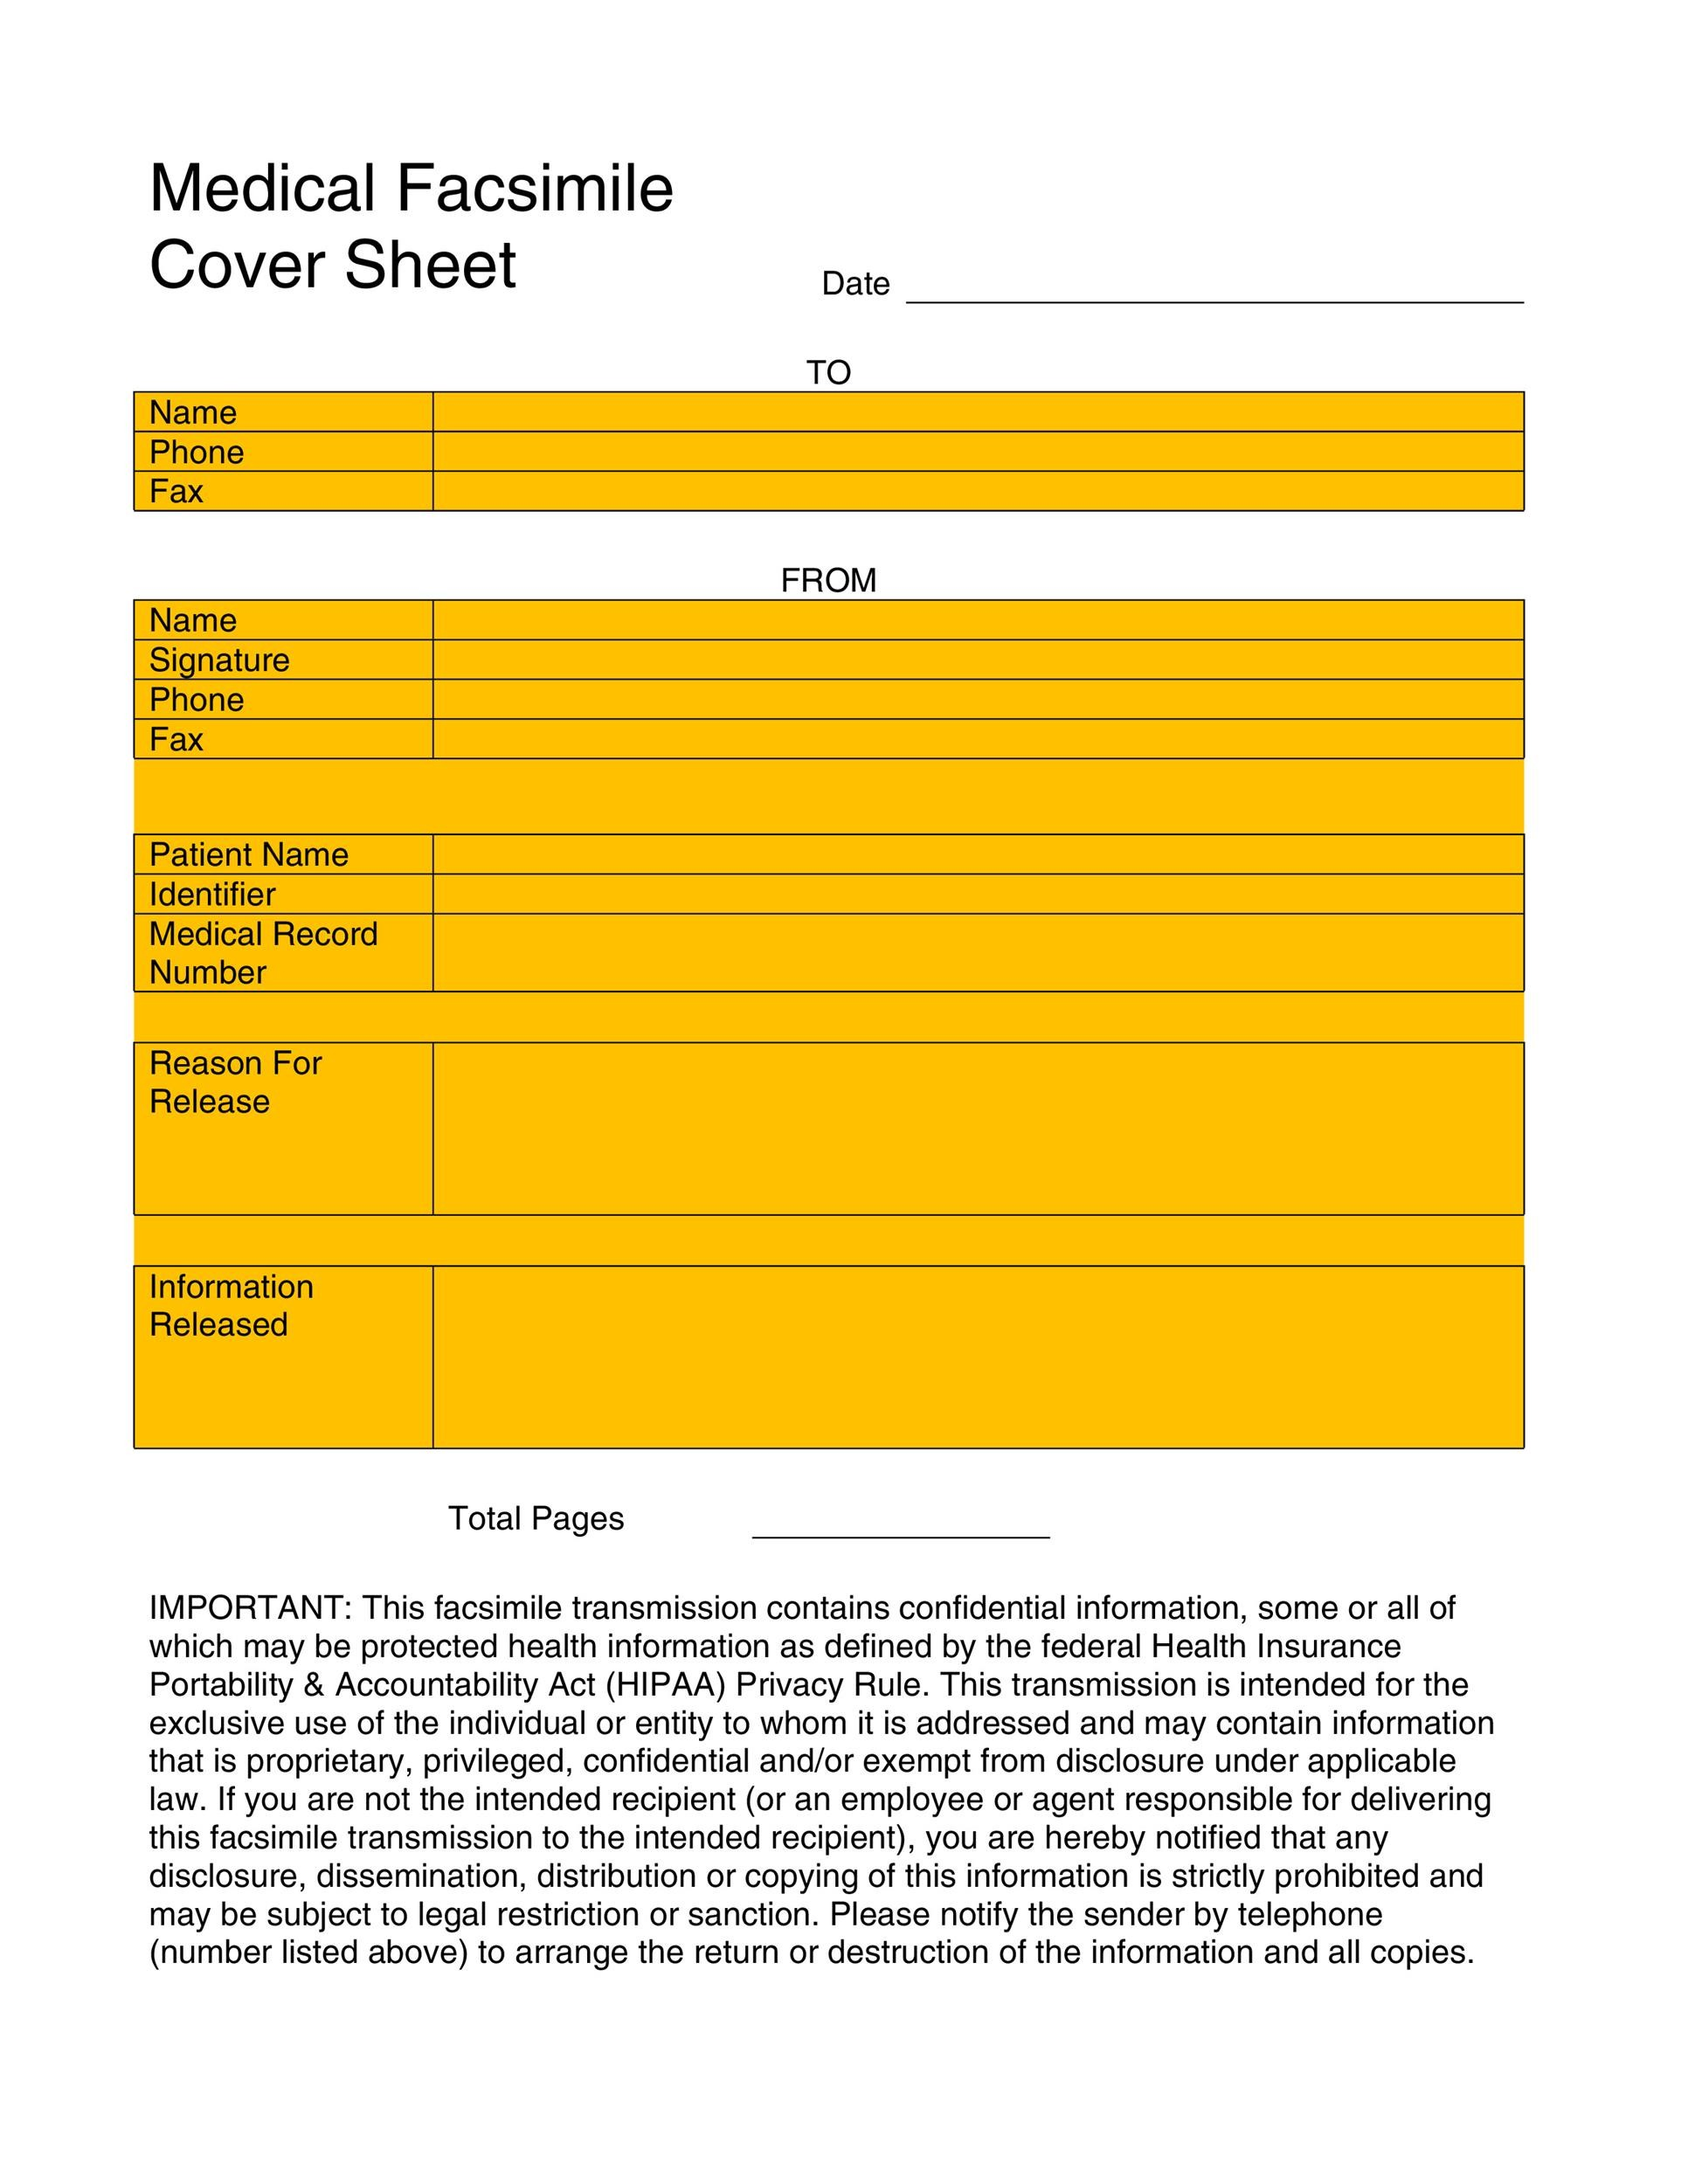 Free Fax Cover sheet Template 15